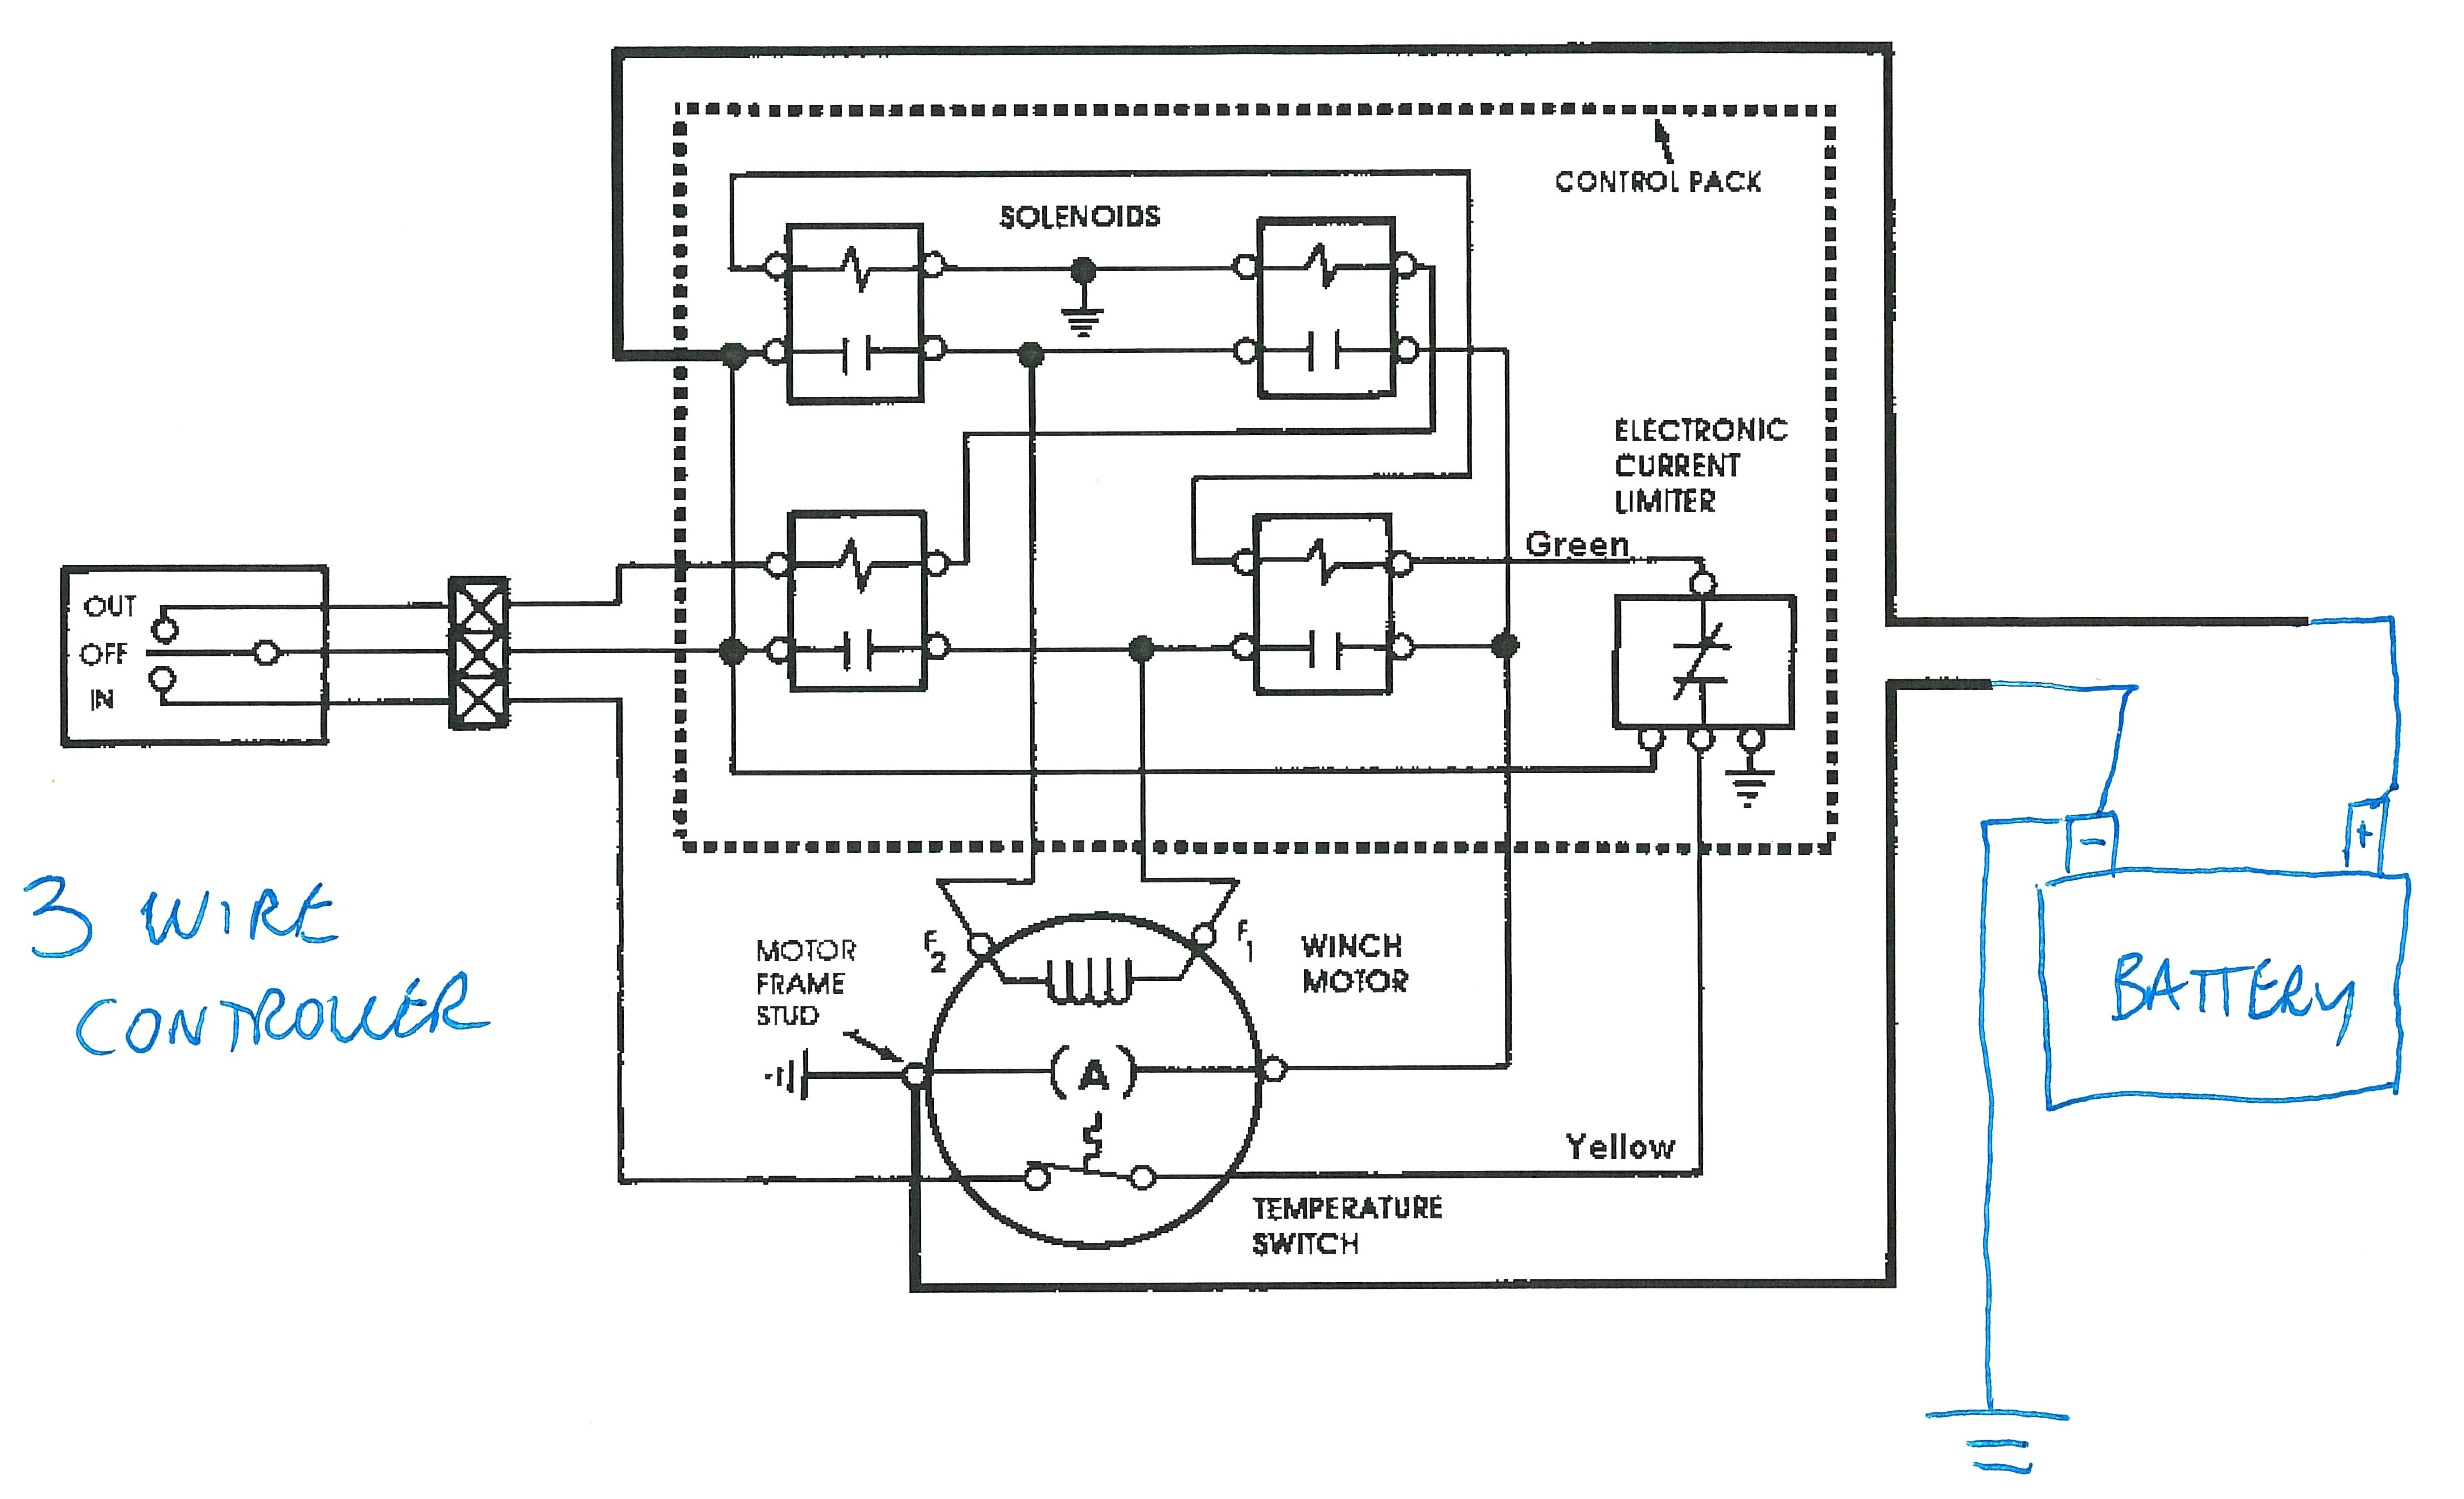 wiring diagram for warn a2000 winch of pressure on the ocean with depth yamaha schematic library atv